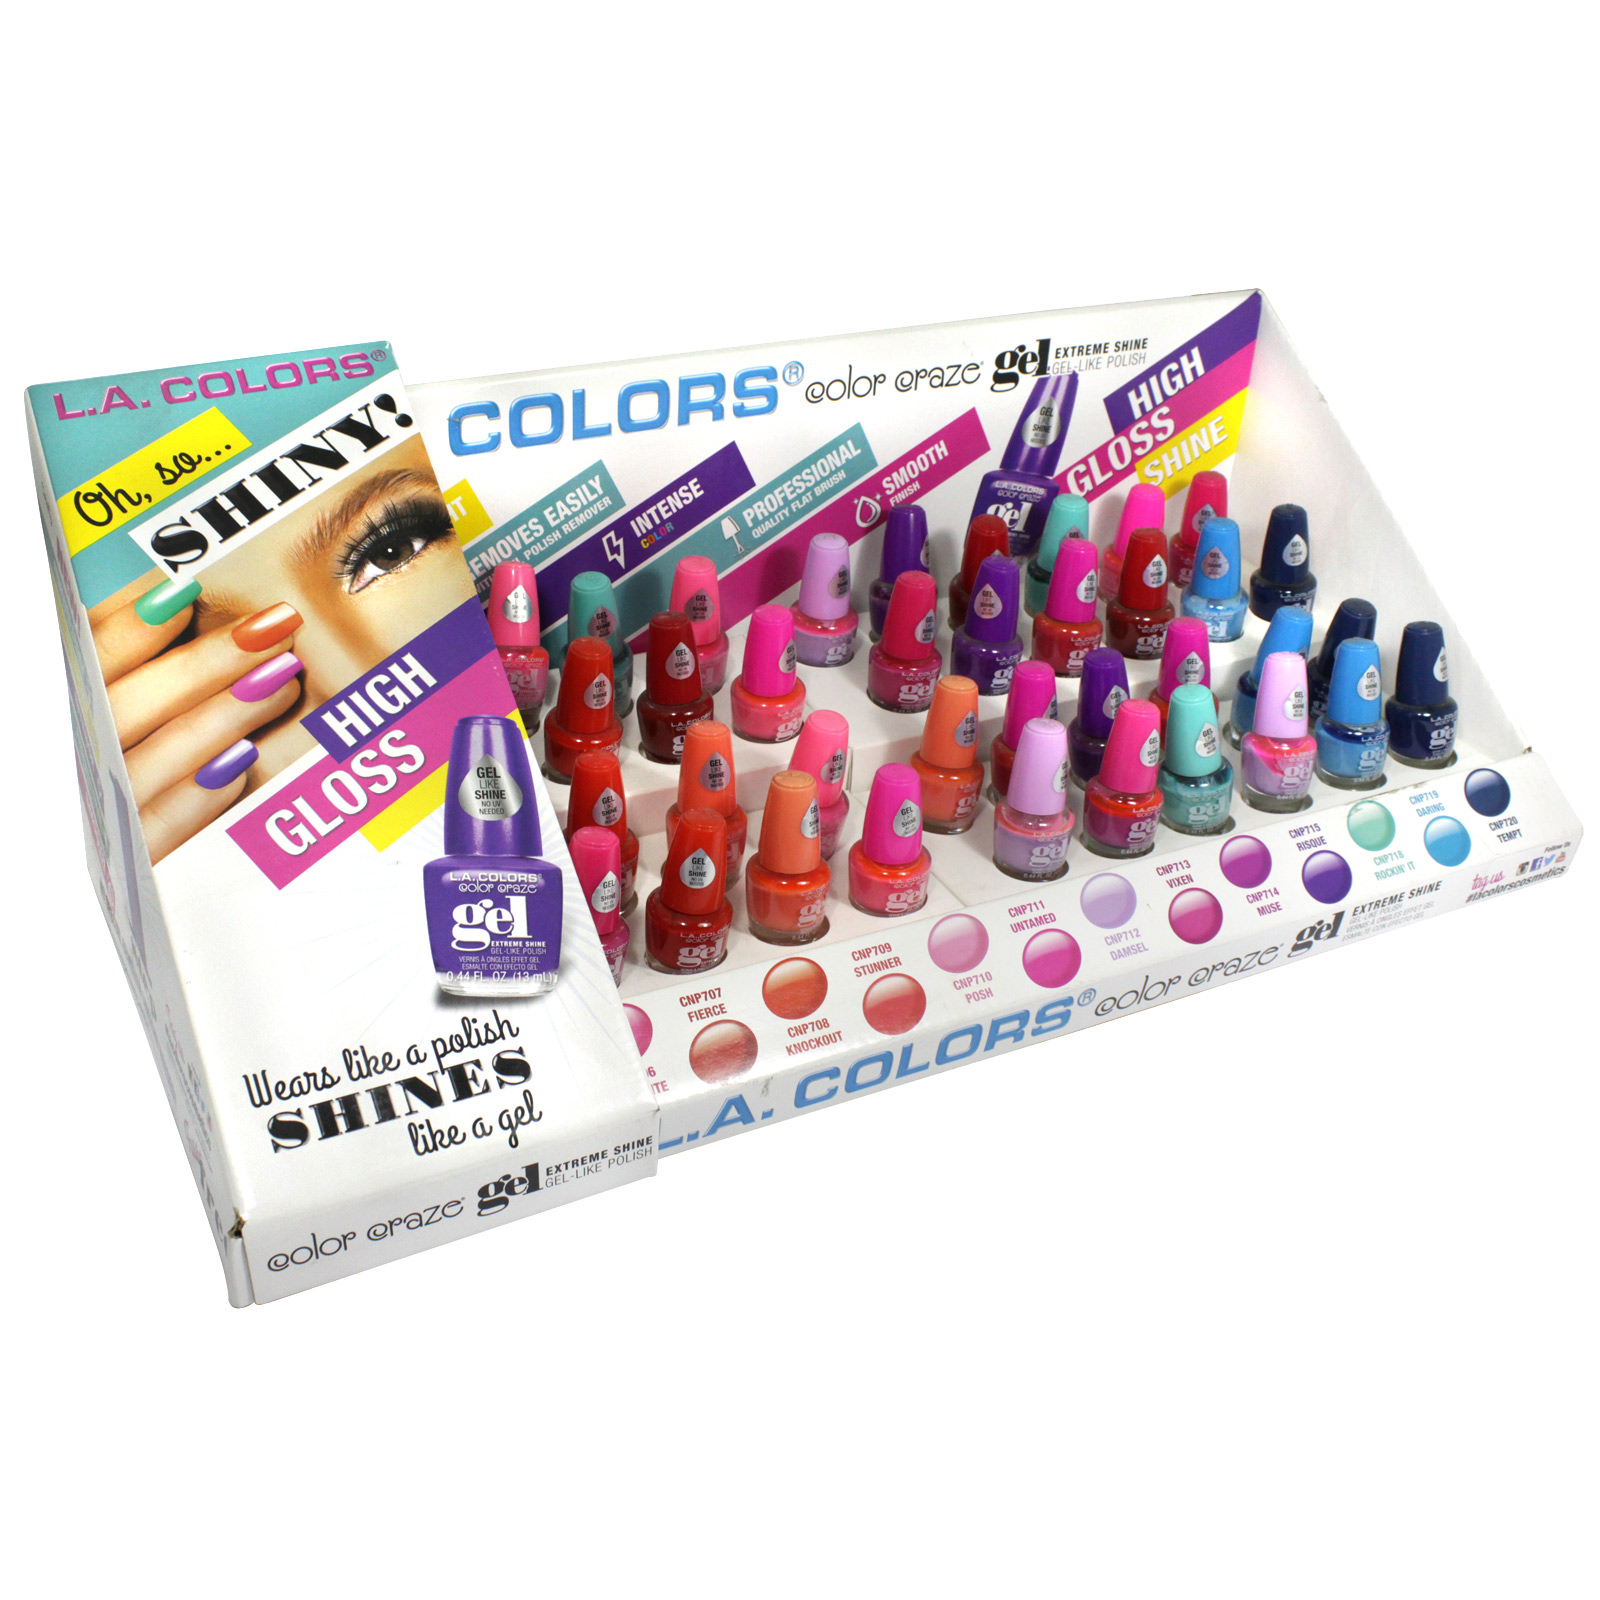 LA COLORS COLOR CRAZE NAIL GEL MERCH  X48